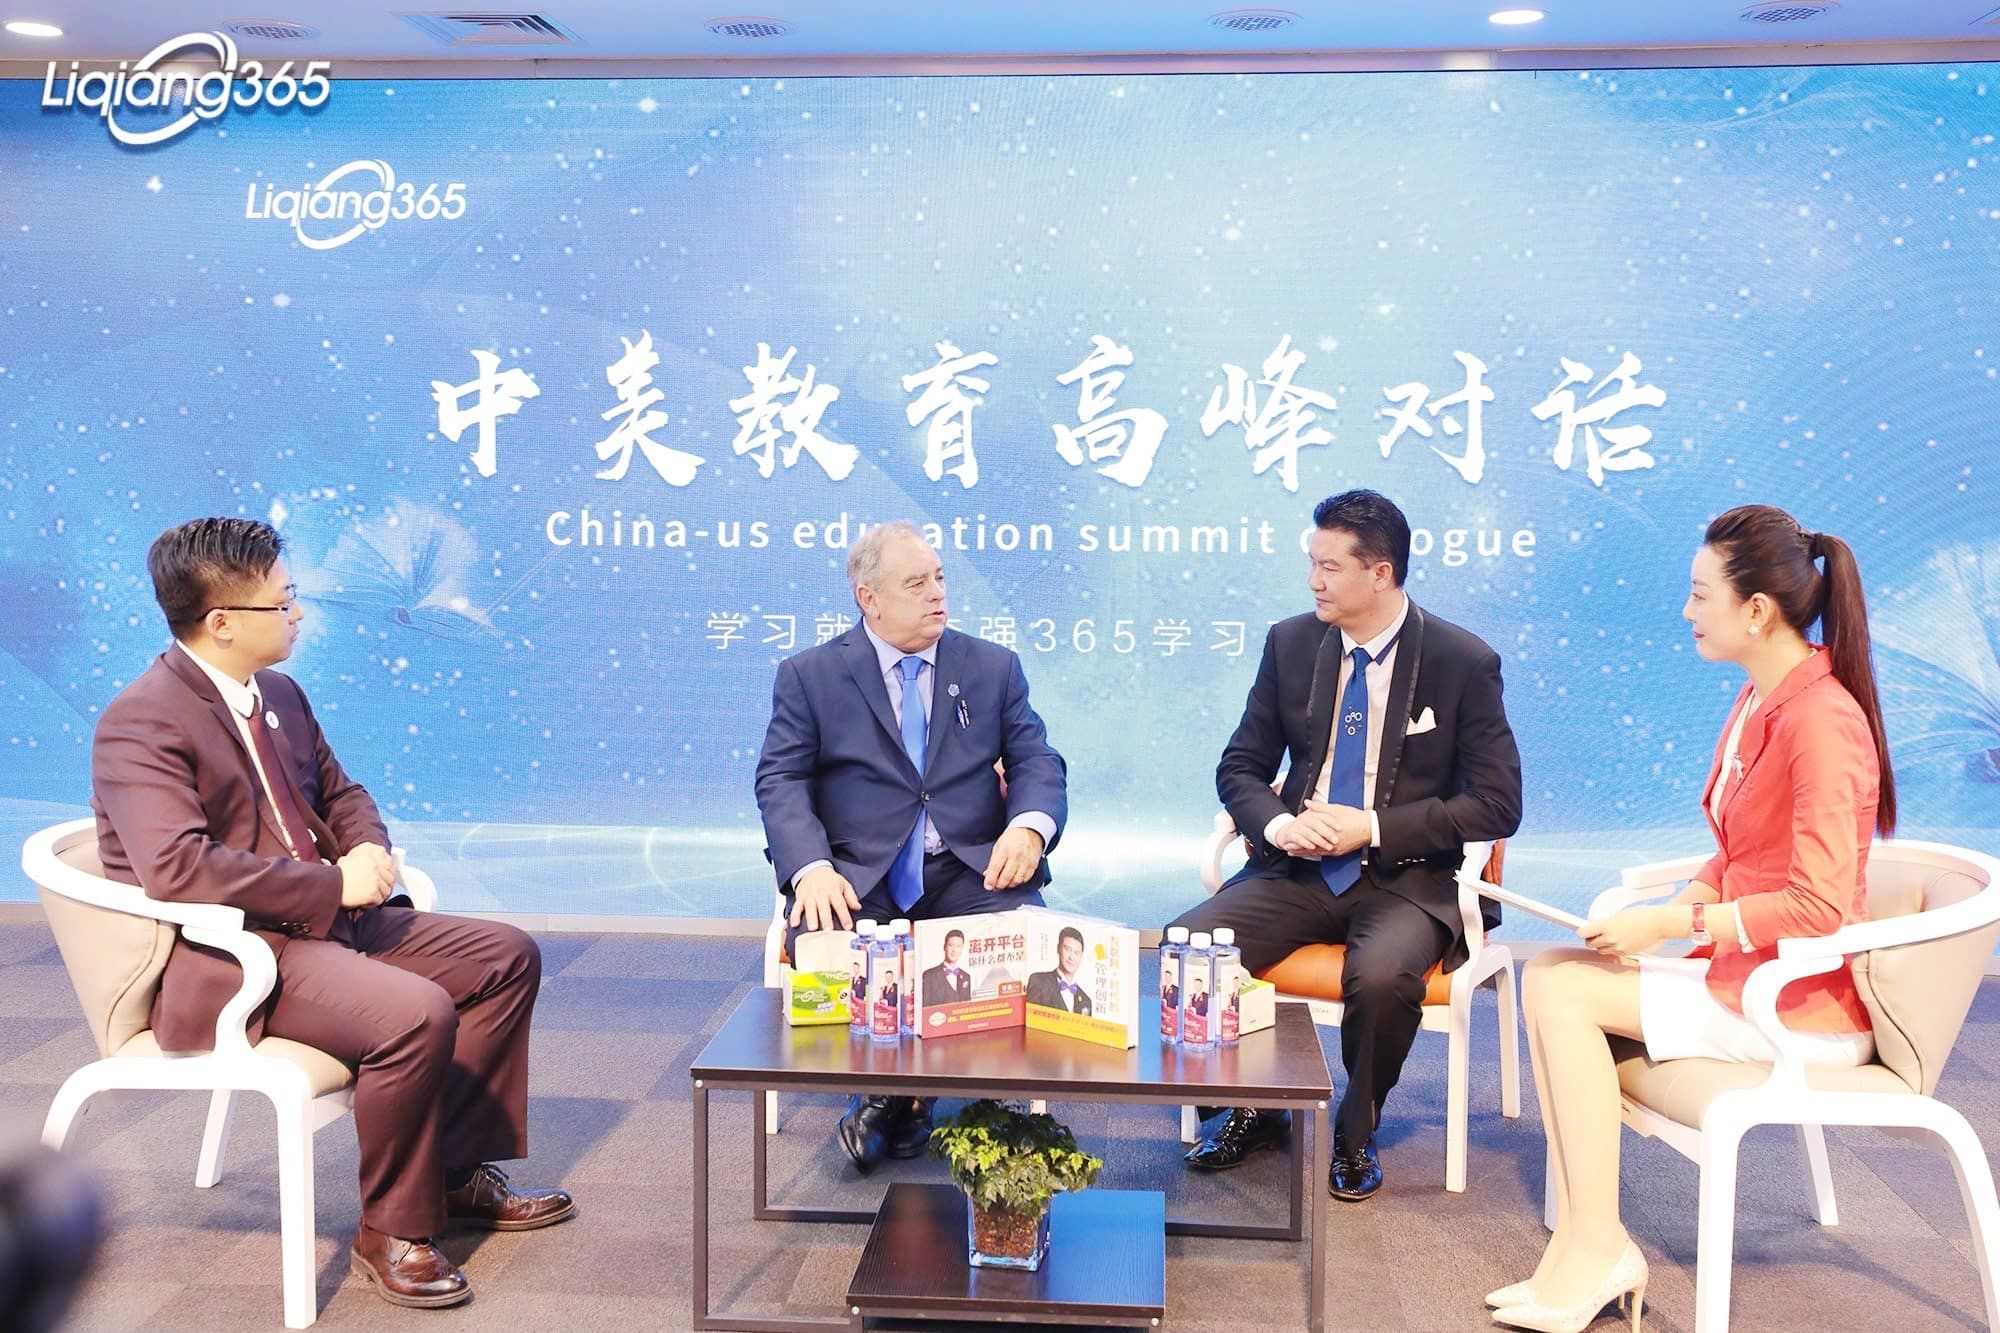 Keiser University Expands Student Exchange Program with China